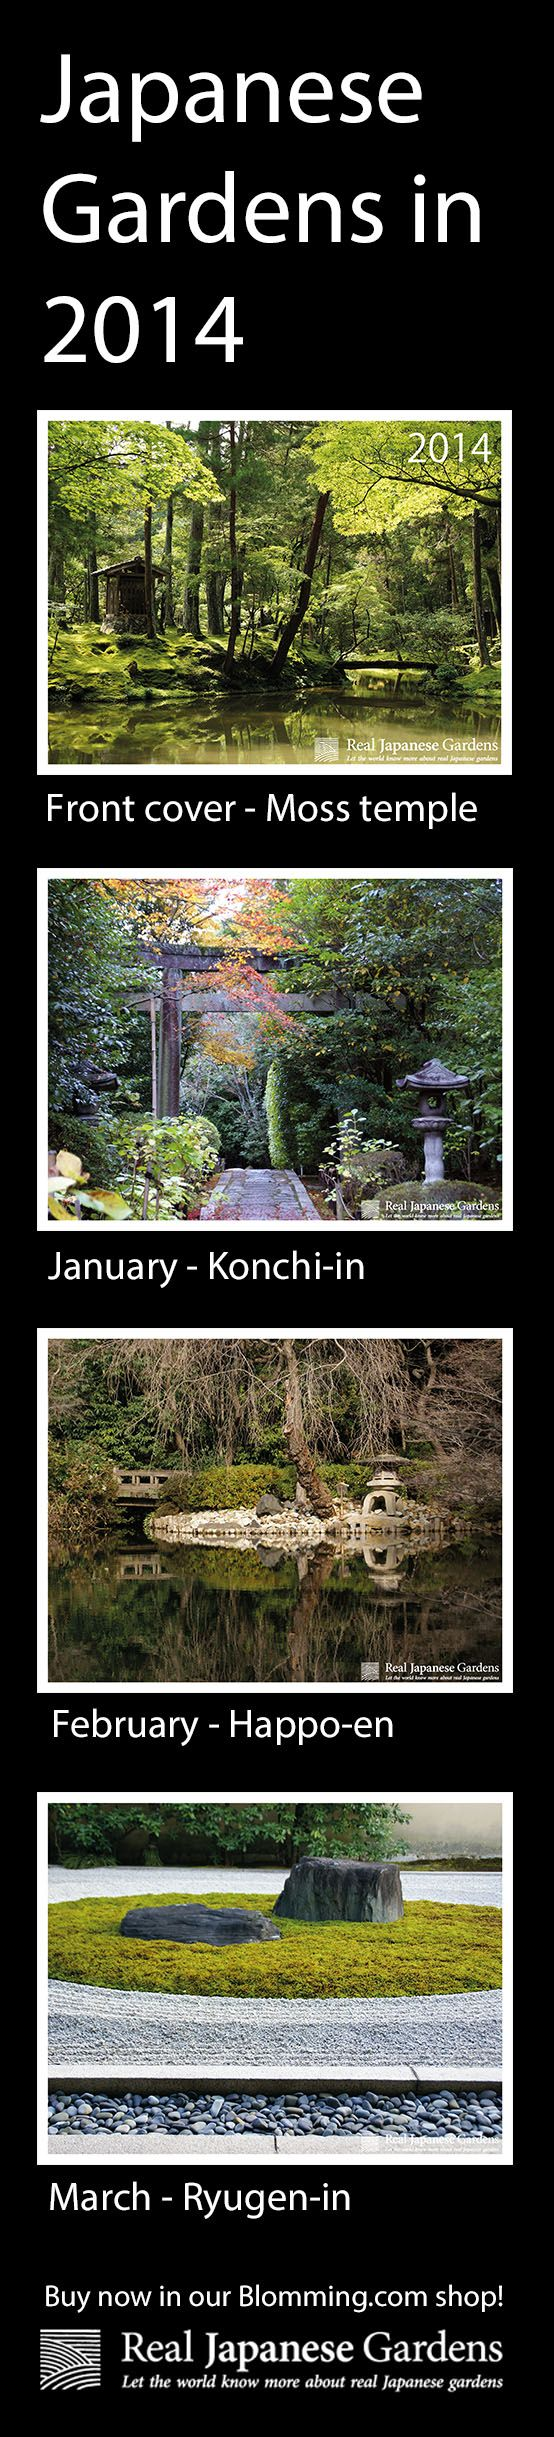 January through March of our Real Japanese Garden Wall Calendar 2014 - available for $12.89 on blomming now: http://www.blomming.com/mm/realjapanesegardens/items/584827